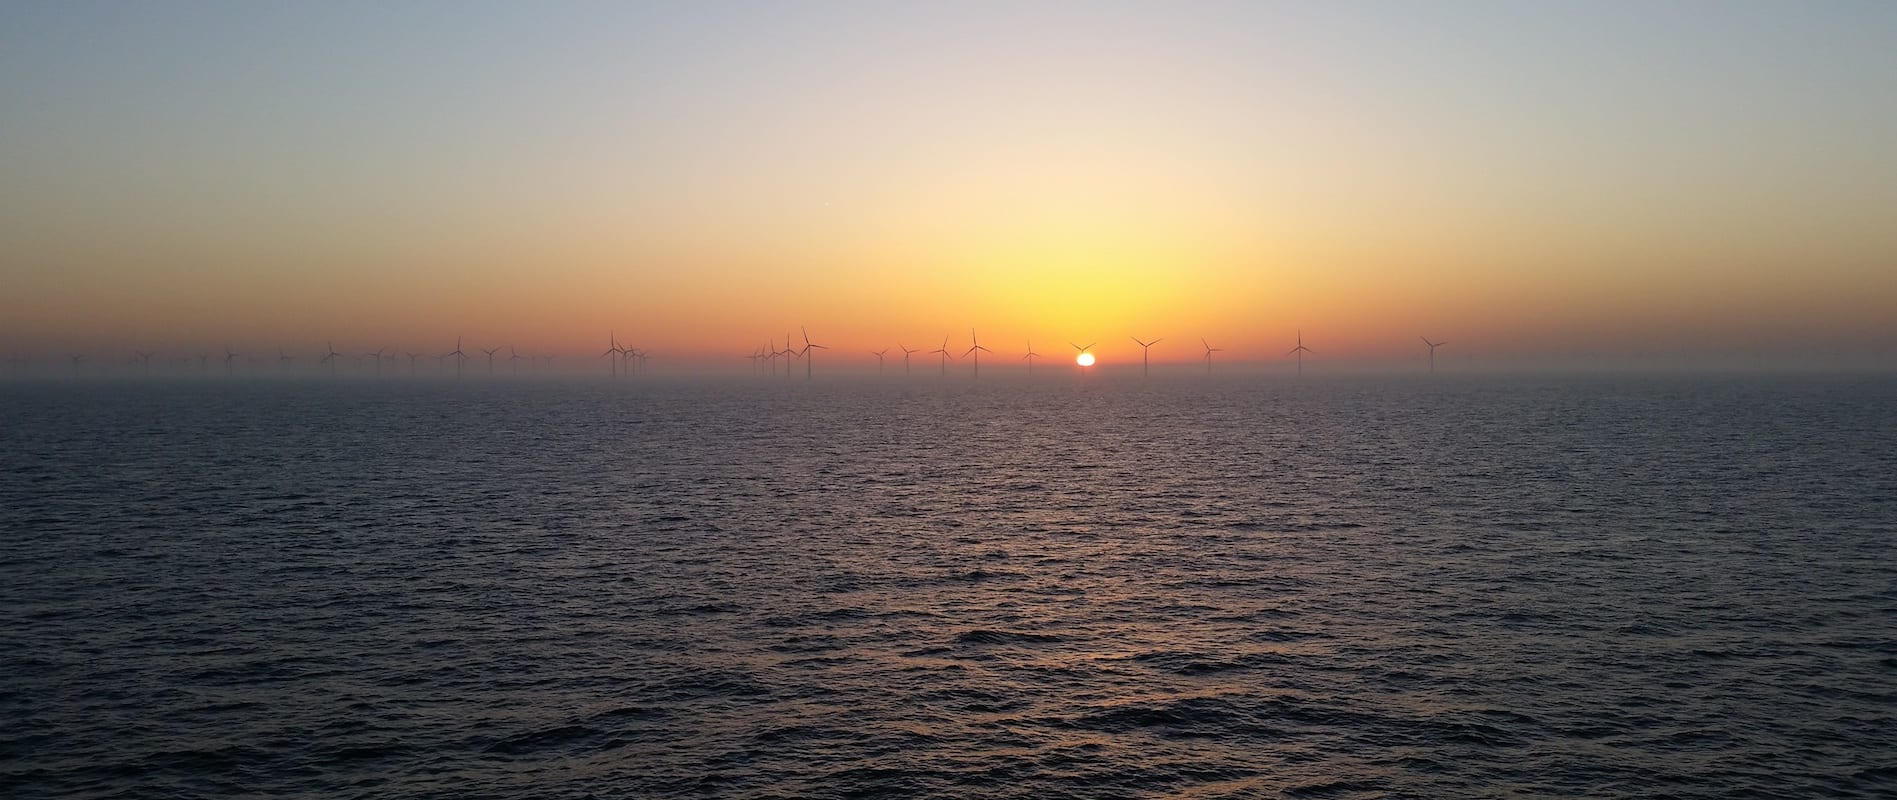 Offshore Wind Energy: A Job Creation Windfall for the Service Industry?